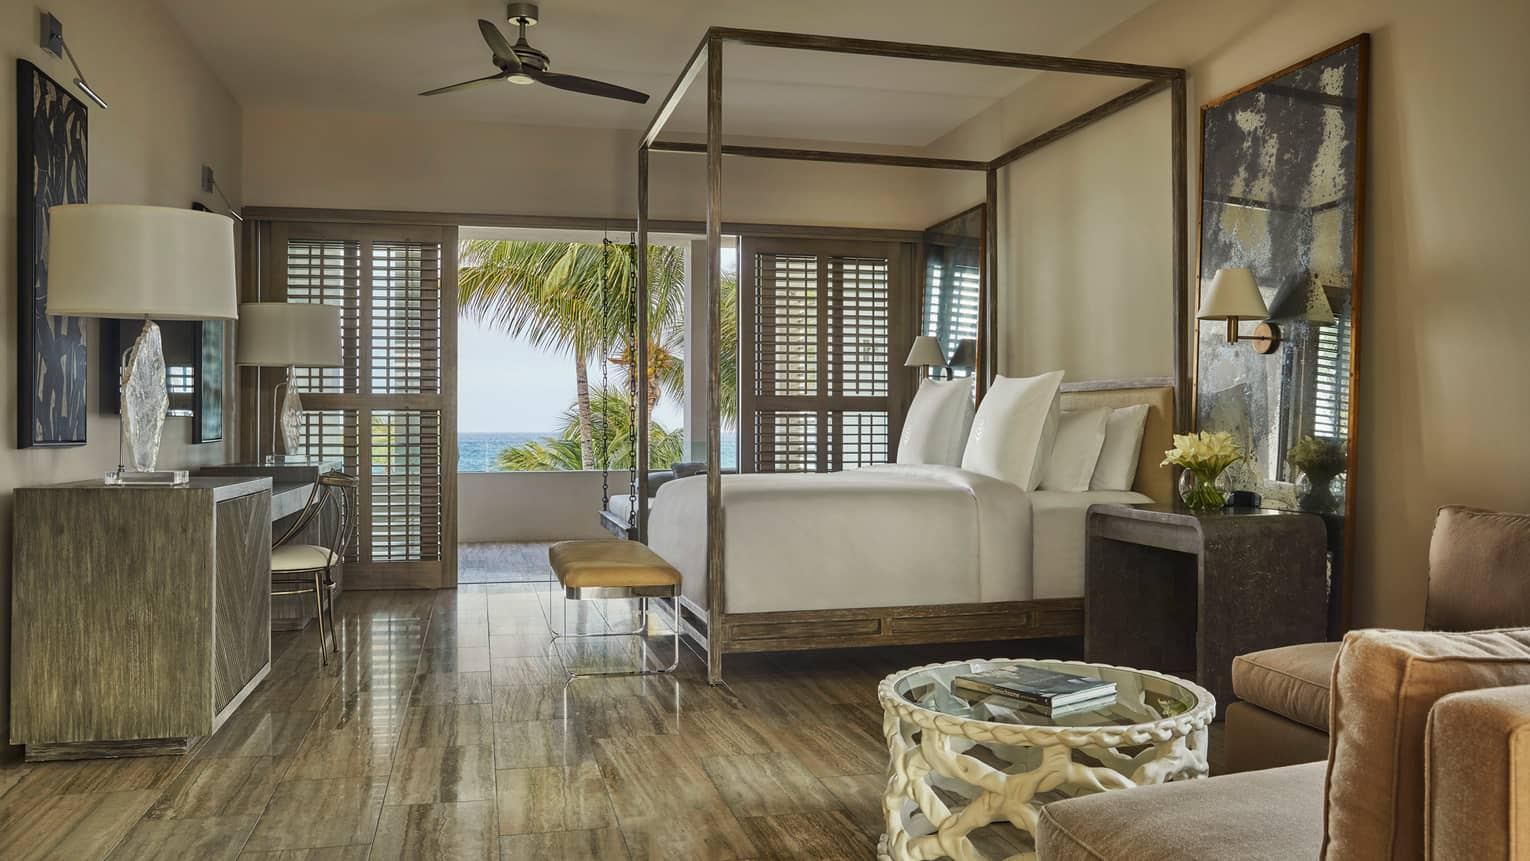 Three-Bedroom Beachfront Villa view from L-shaped sofa to canopy bed, tables with lamps, open patio shutters